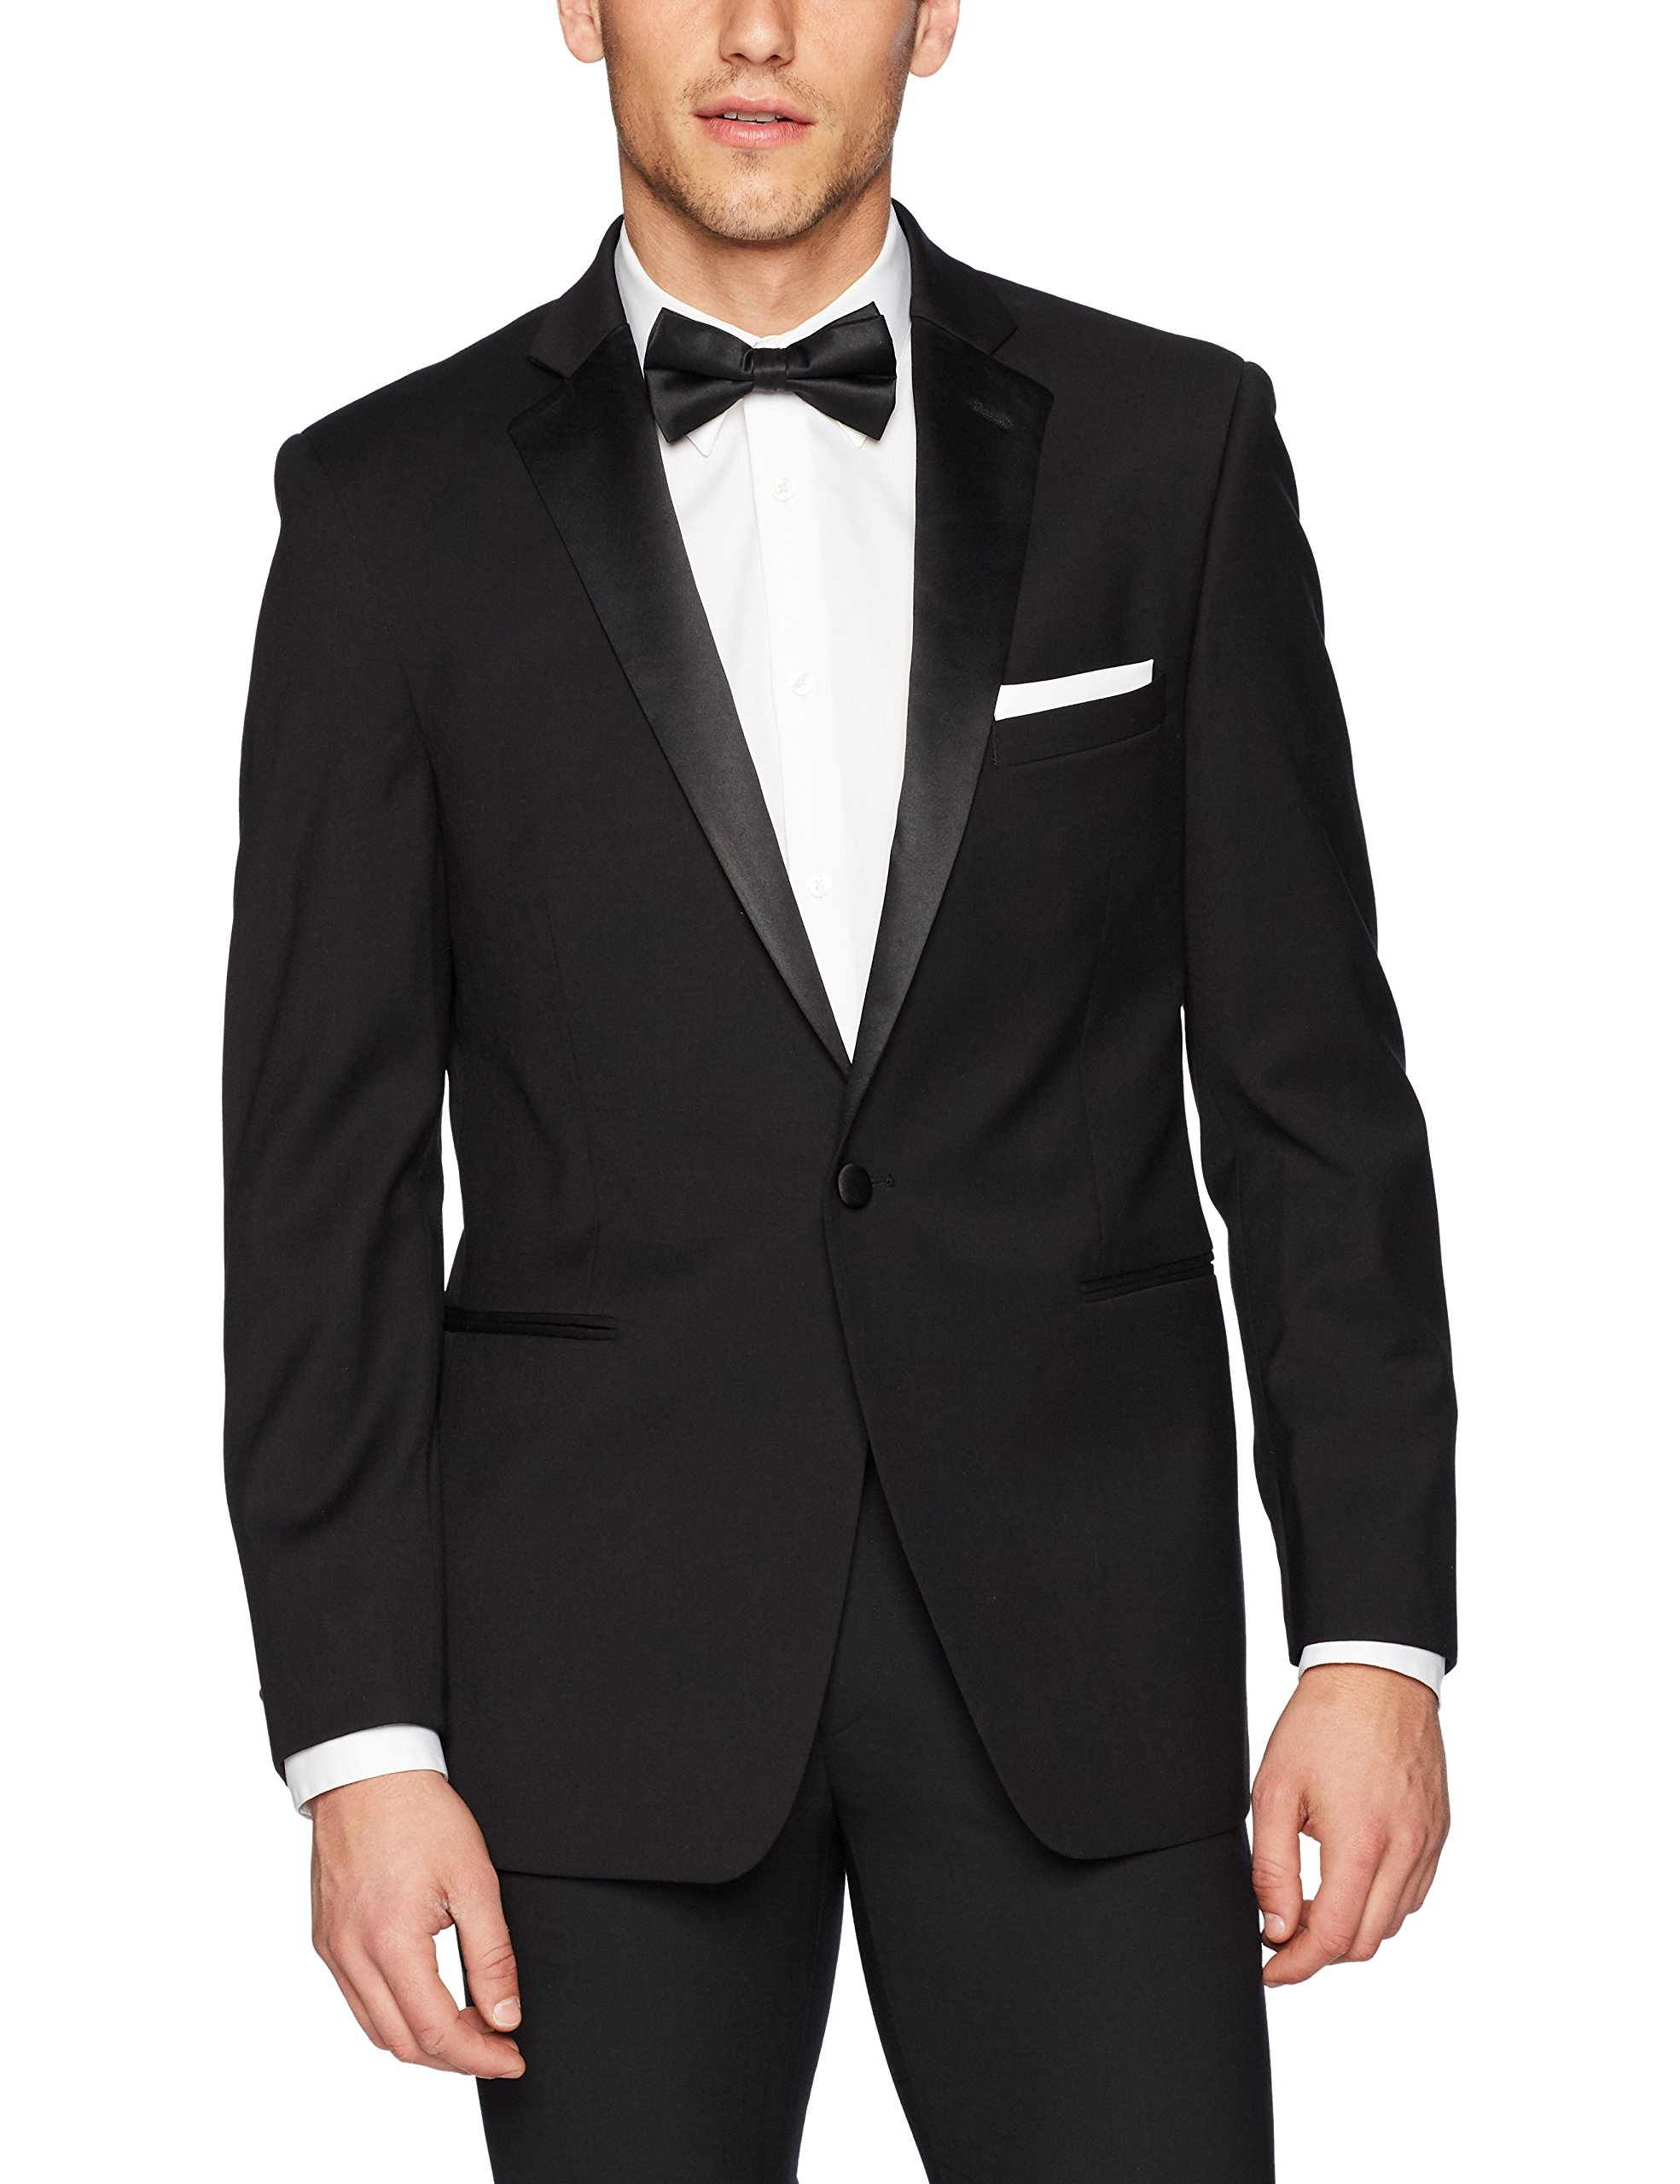 U.S. Polo Assn. Men's Tuxedo Jacket, Black, 42 Regular